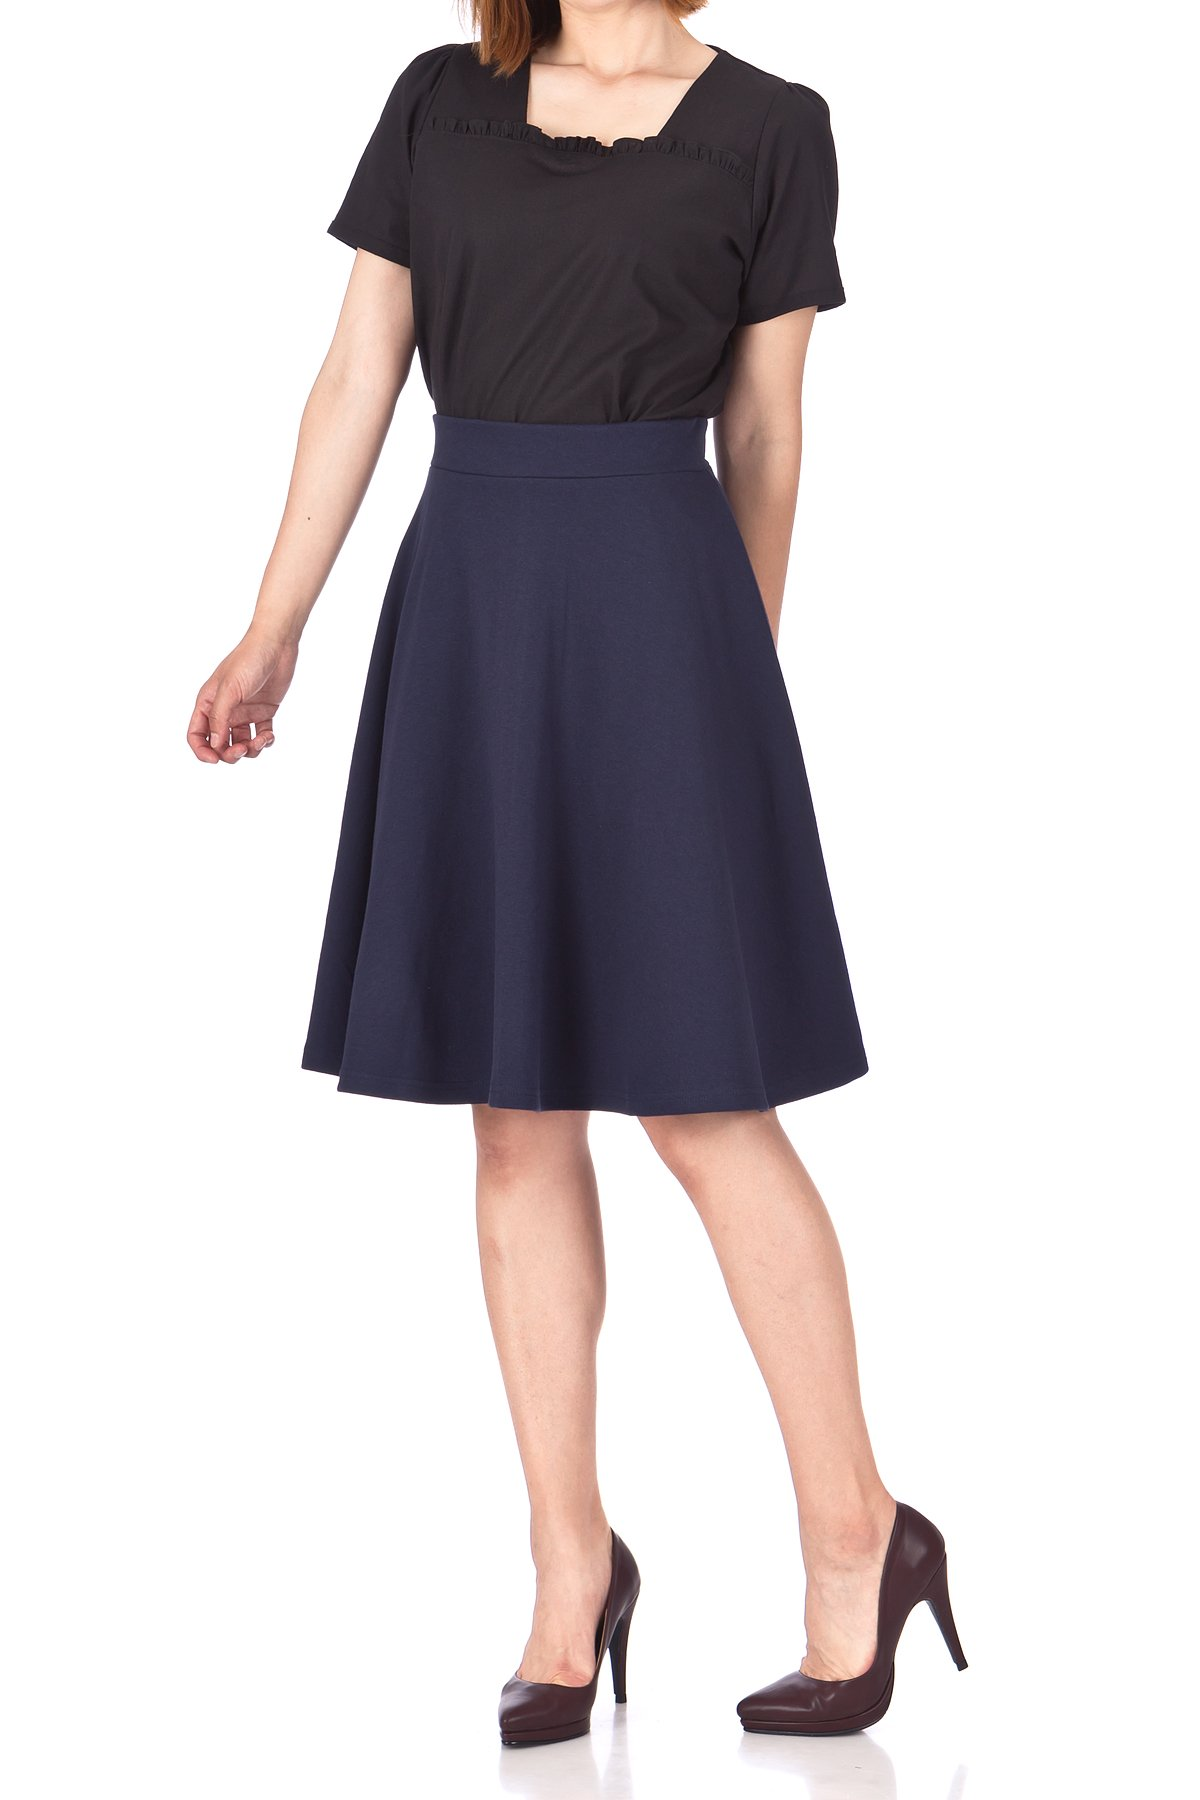 Comfy and Lovely Cotton Blend Versatile Casual Office High Waist A line Full Flared Swing Circle Skater Knee Length Skirt Navy 03 1